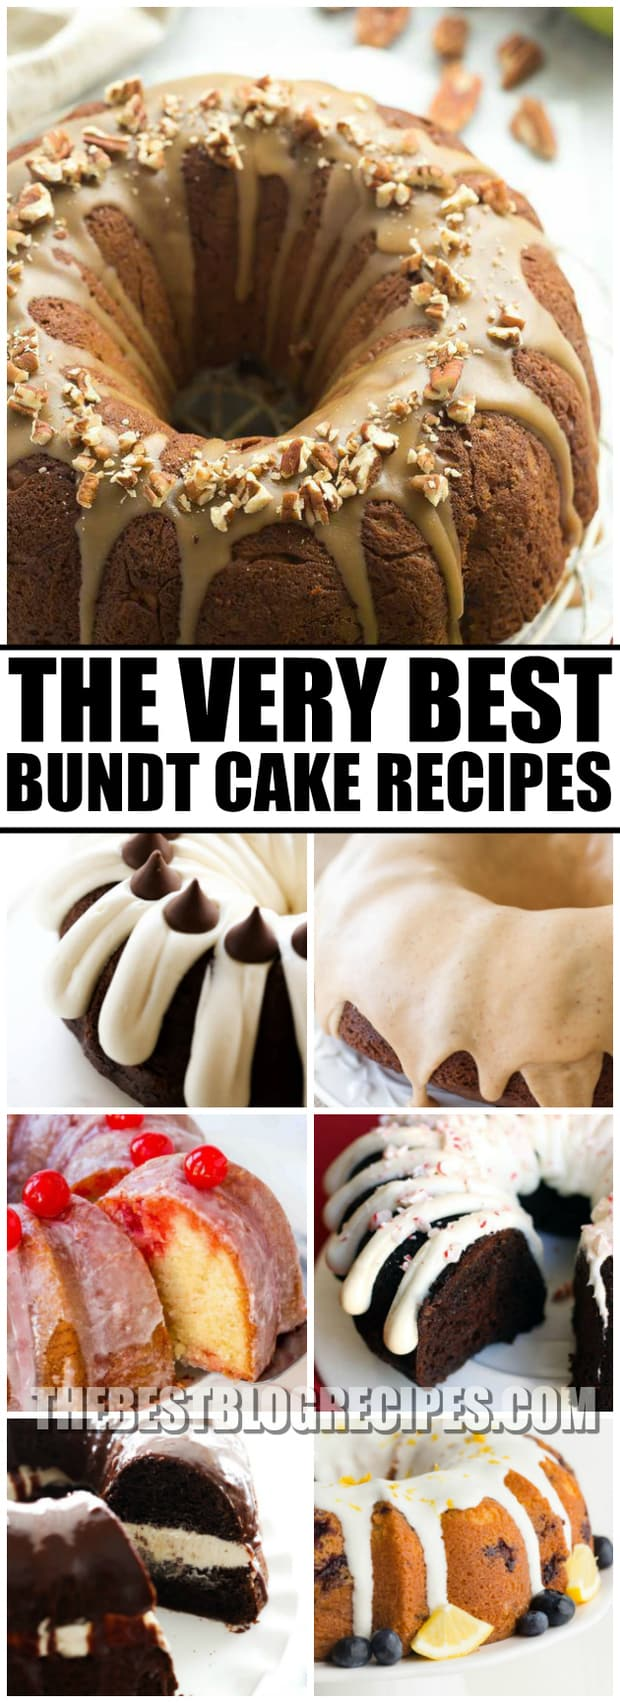 East Bundt Cake Recipes